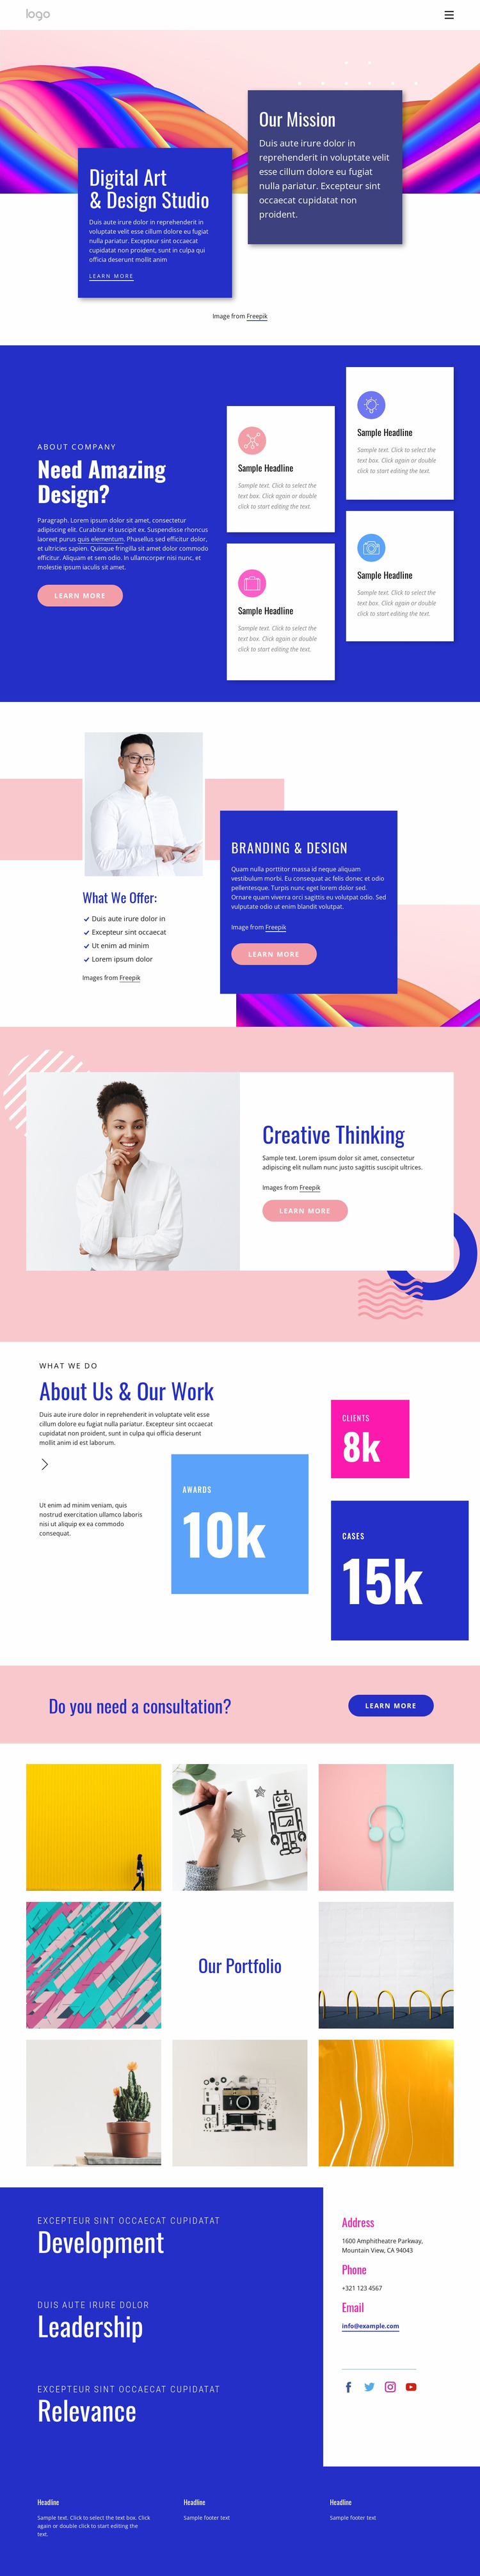 Create content that connects Website Mockup